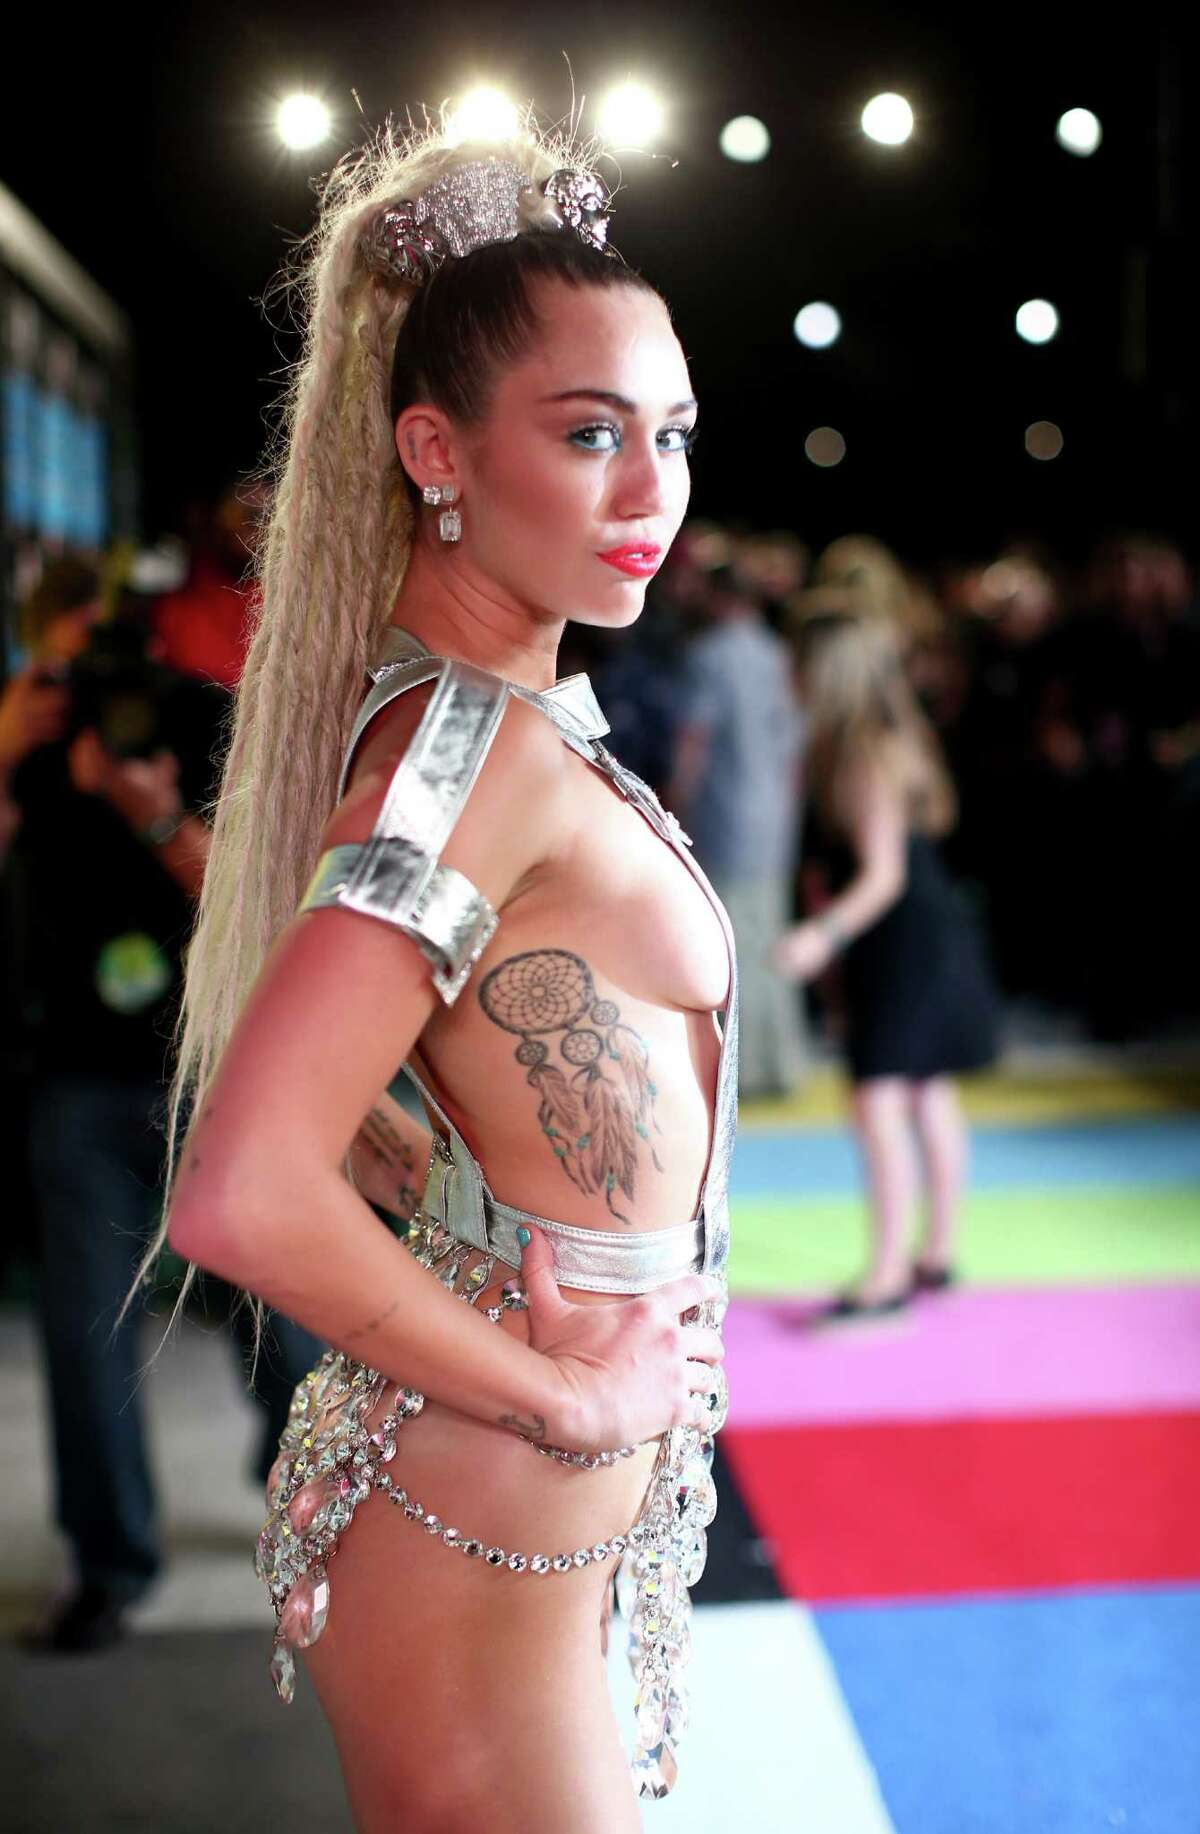 Miley Cyrus attends the 2015 MTV Video Music Awards at Microsoft Theater on August 30, 2015 in Los Angeles, California. (Photo by Kevin Mazur/WireImage)